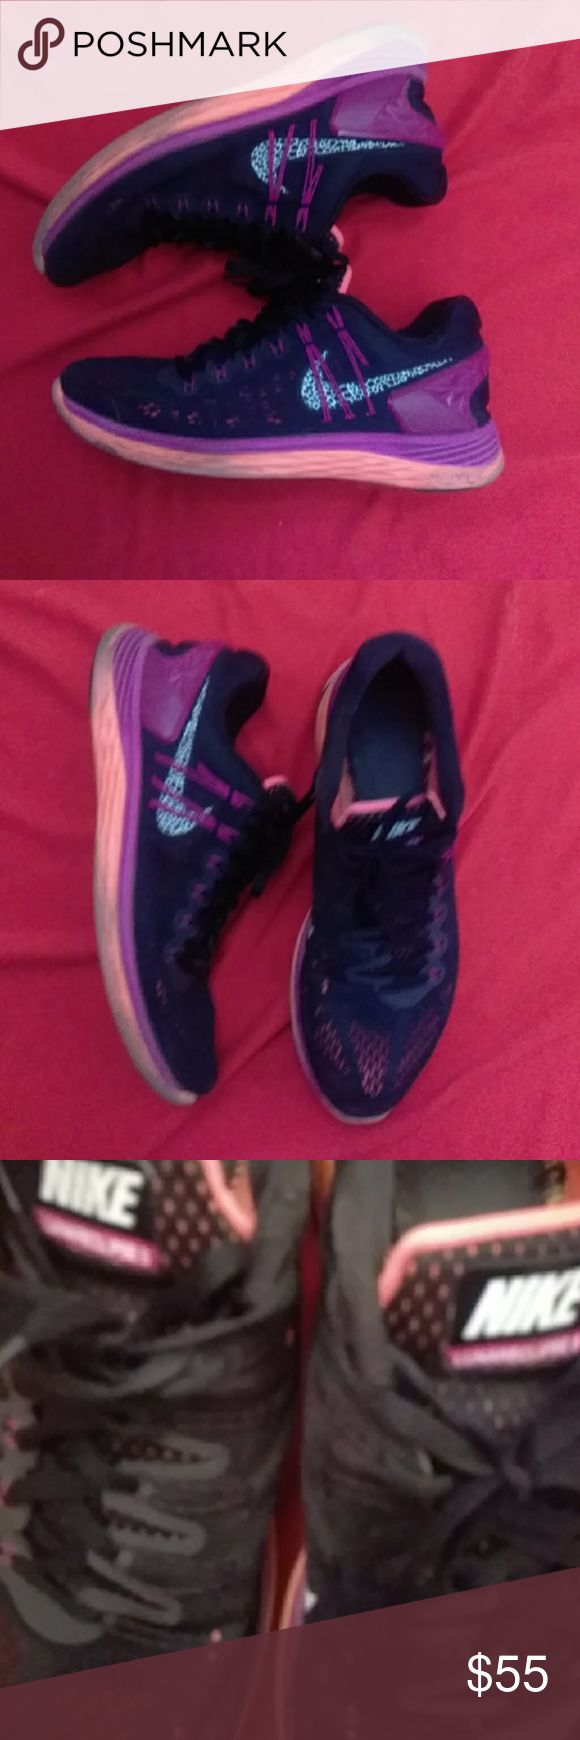 Nike lunar eclipse Good condition Nike lunar eclipse size 10 pink,orange and black. Normal wear.💫5 star seller check out my stats and my other listings:) Nike Shoes